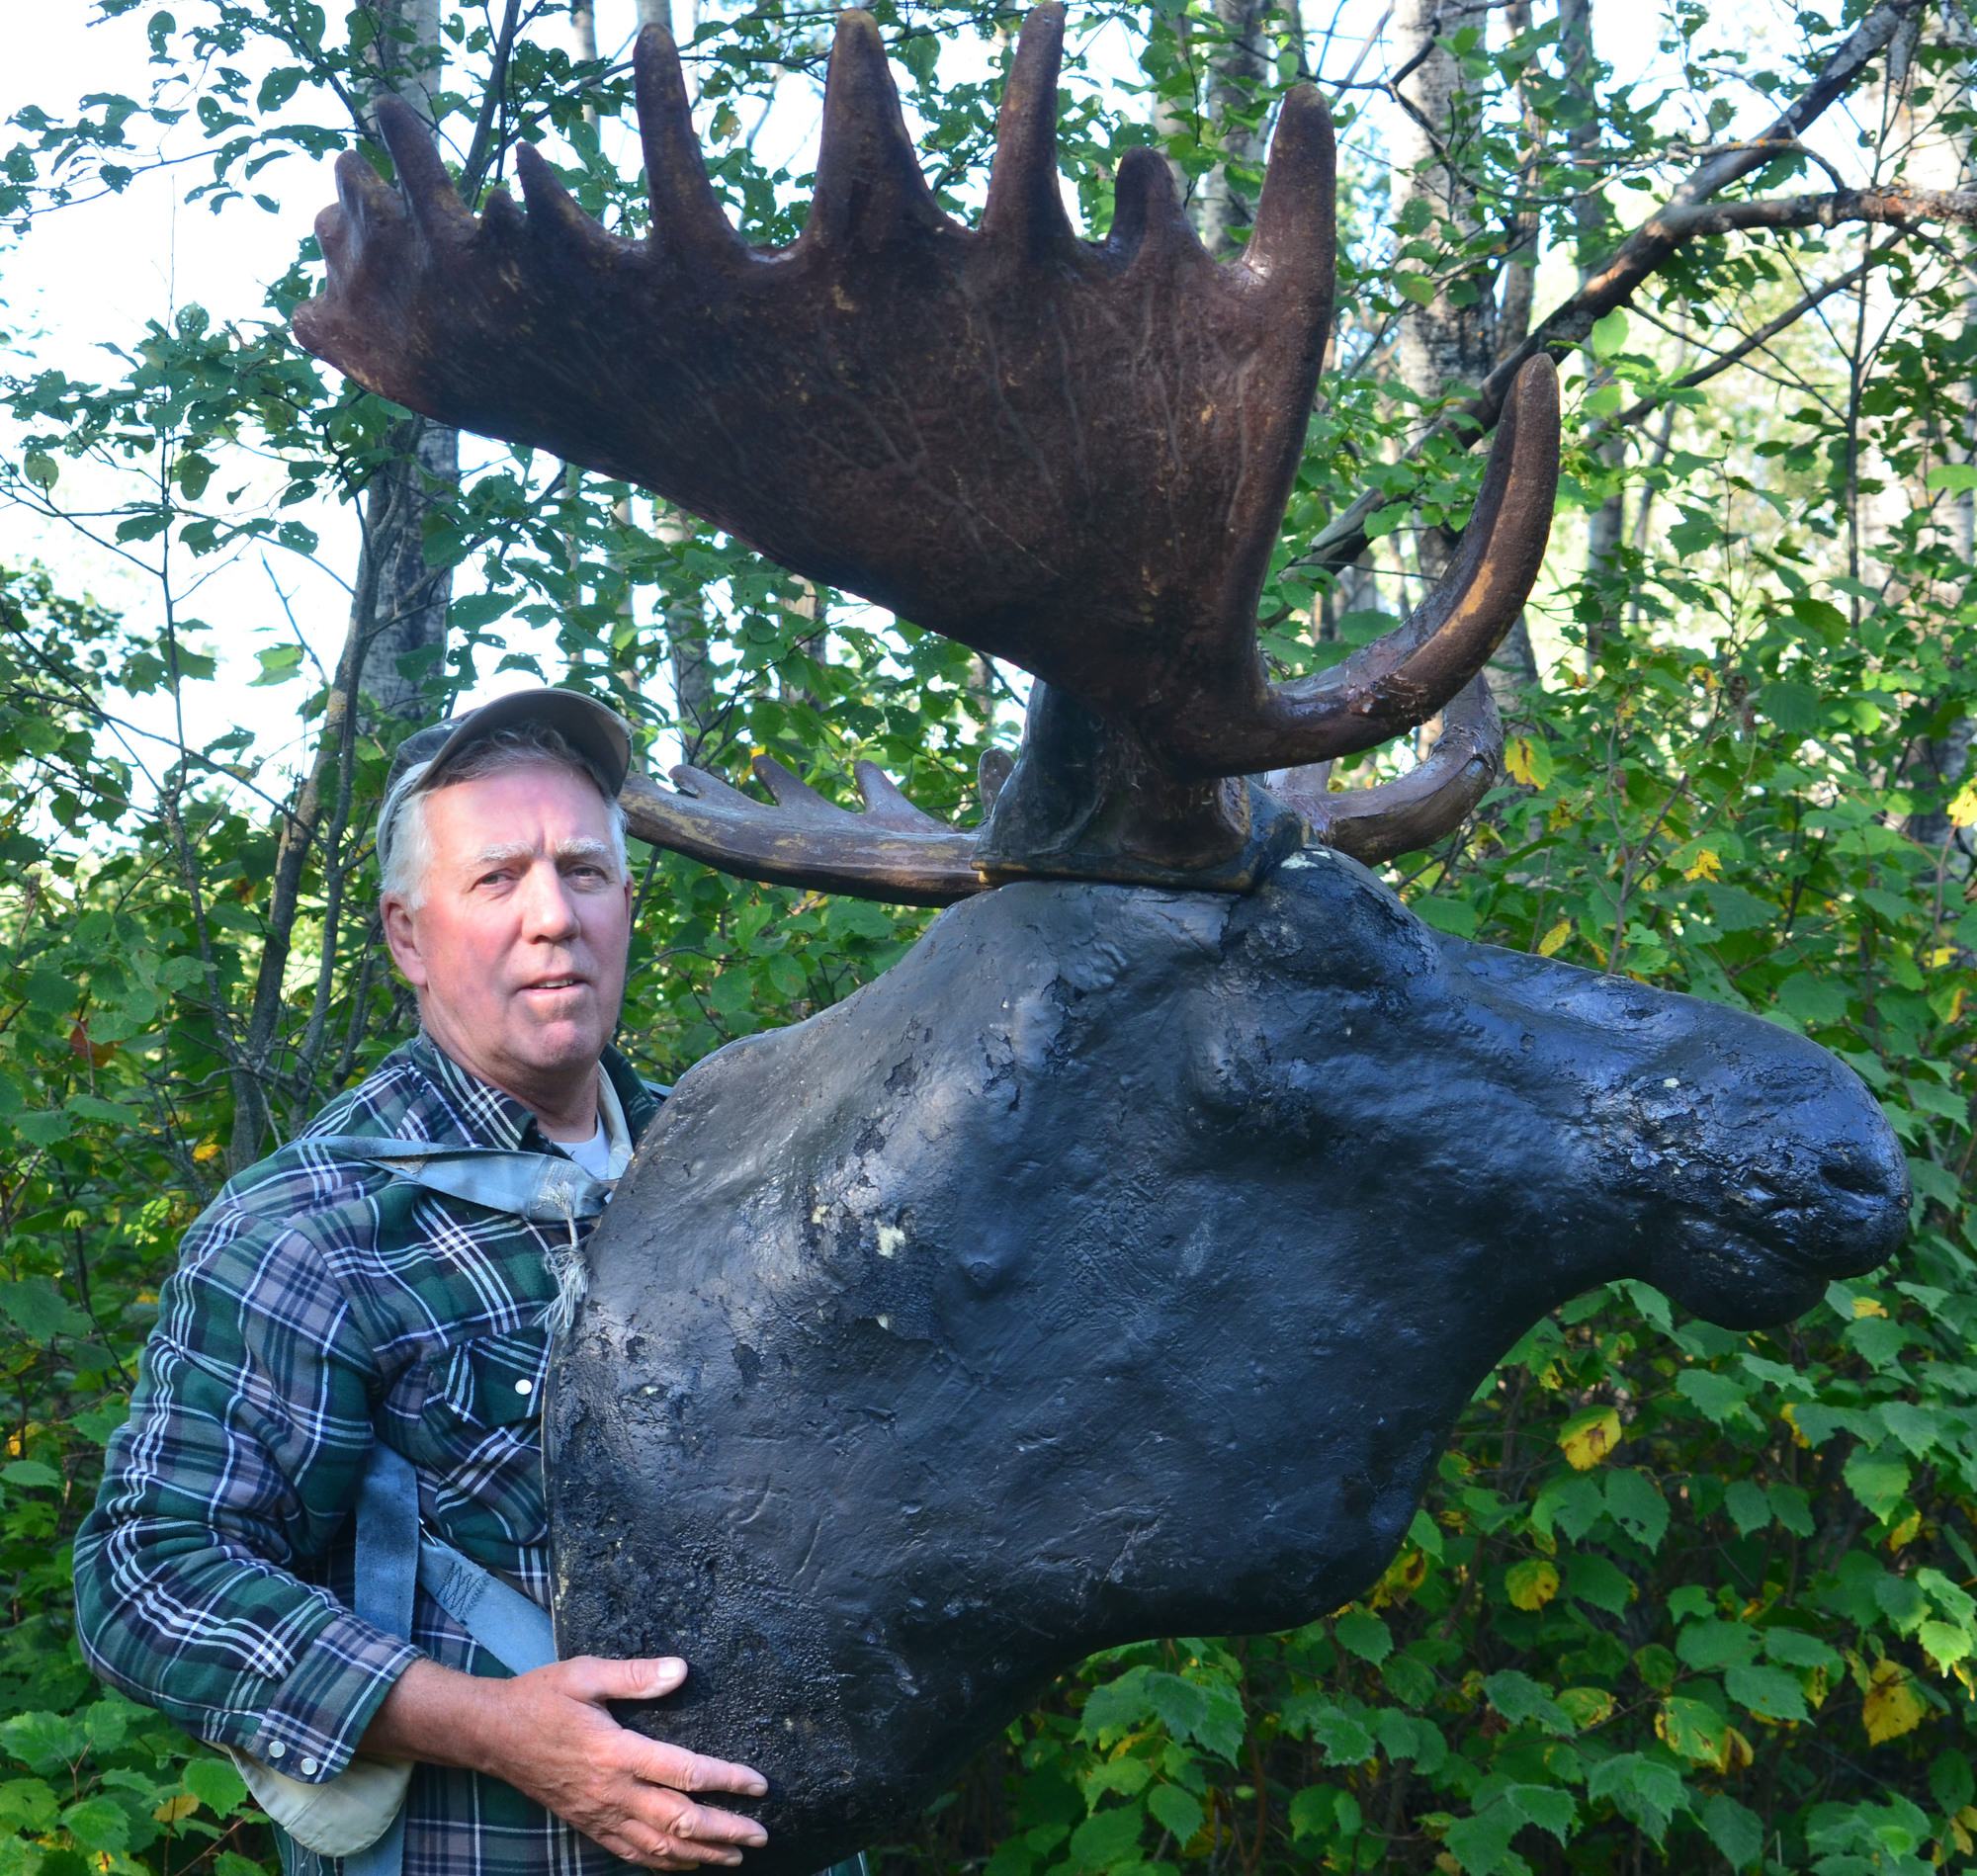 Vince Crichton, an internationally-recognized expert on moose management and biology, will be speaking in Ishpeming Oct. 19.